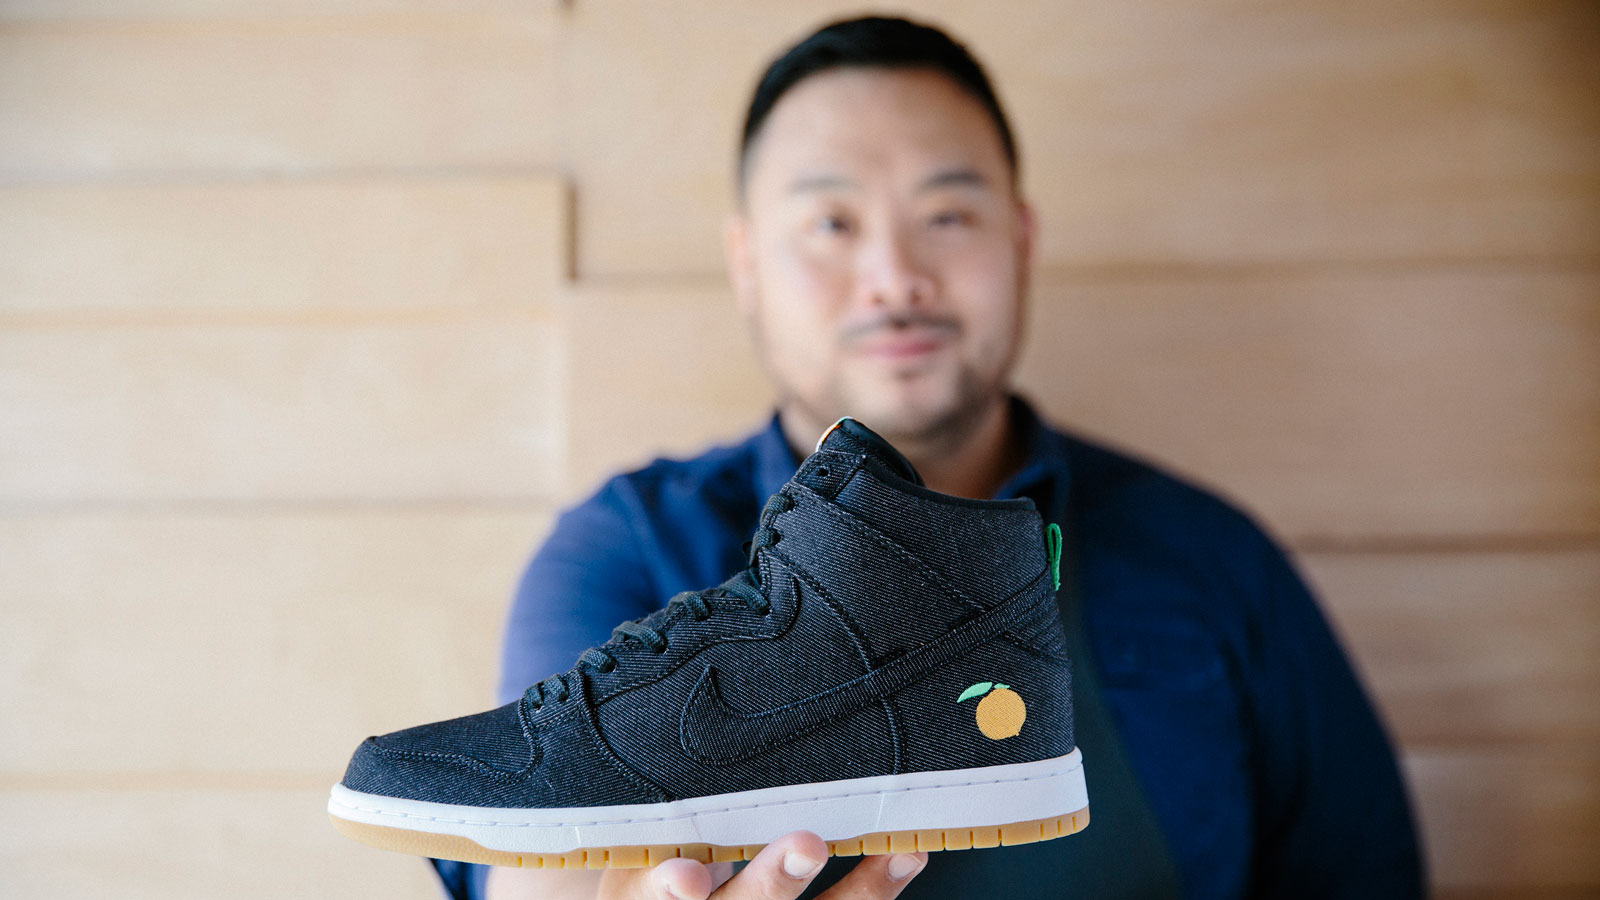 david-chang-nike-momofuku-2-FT-BLOG0617.jpg